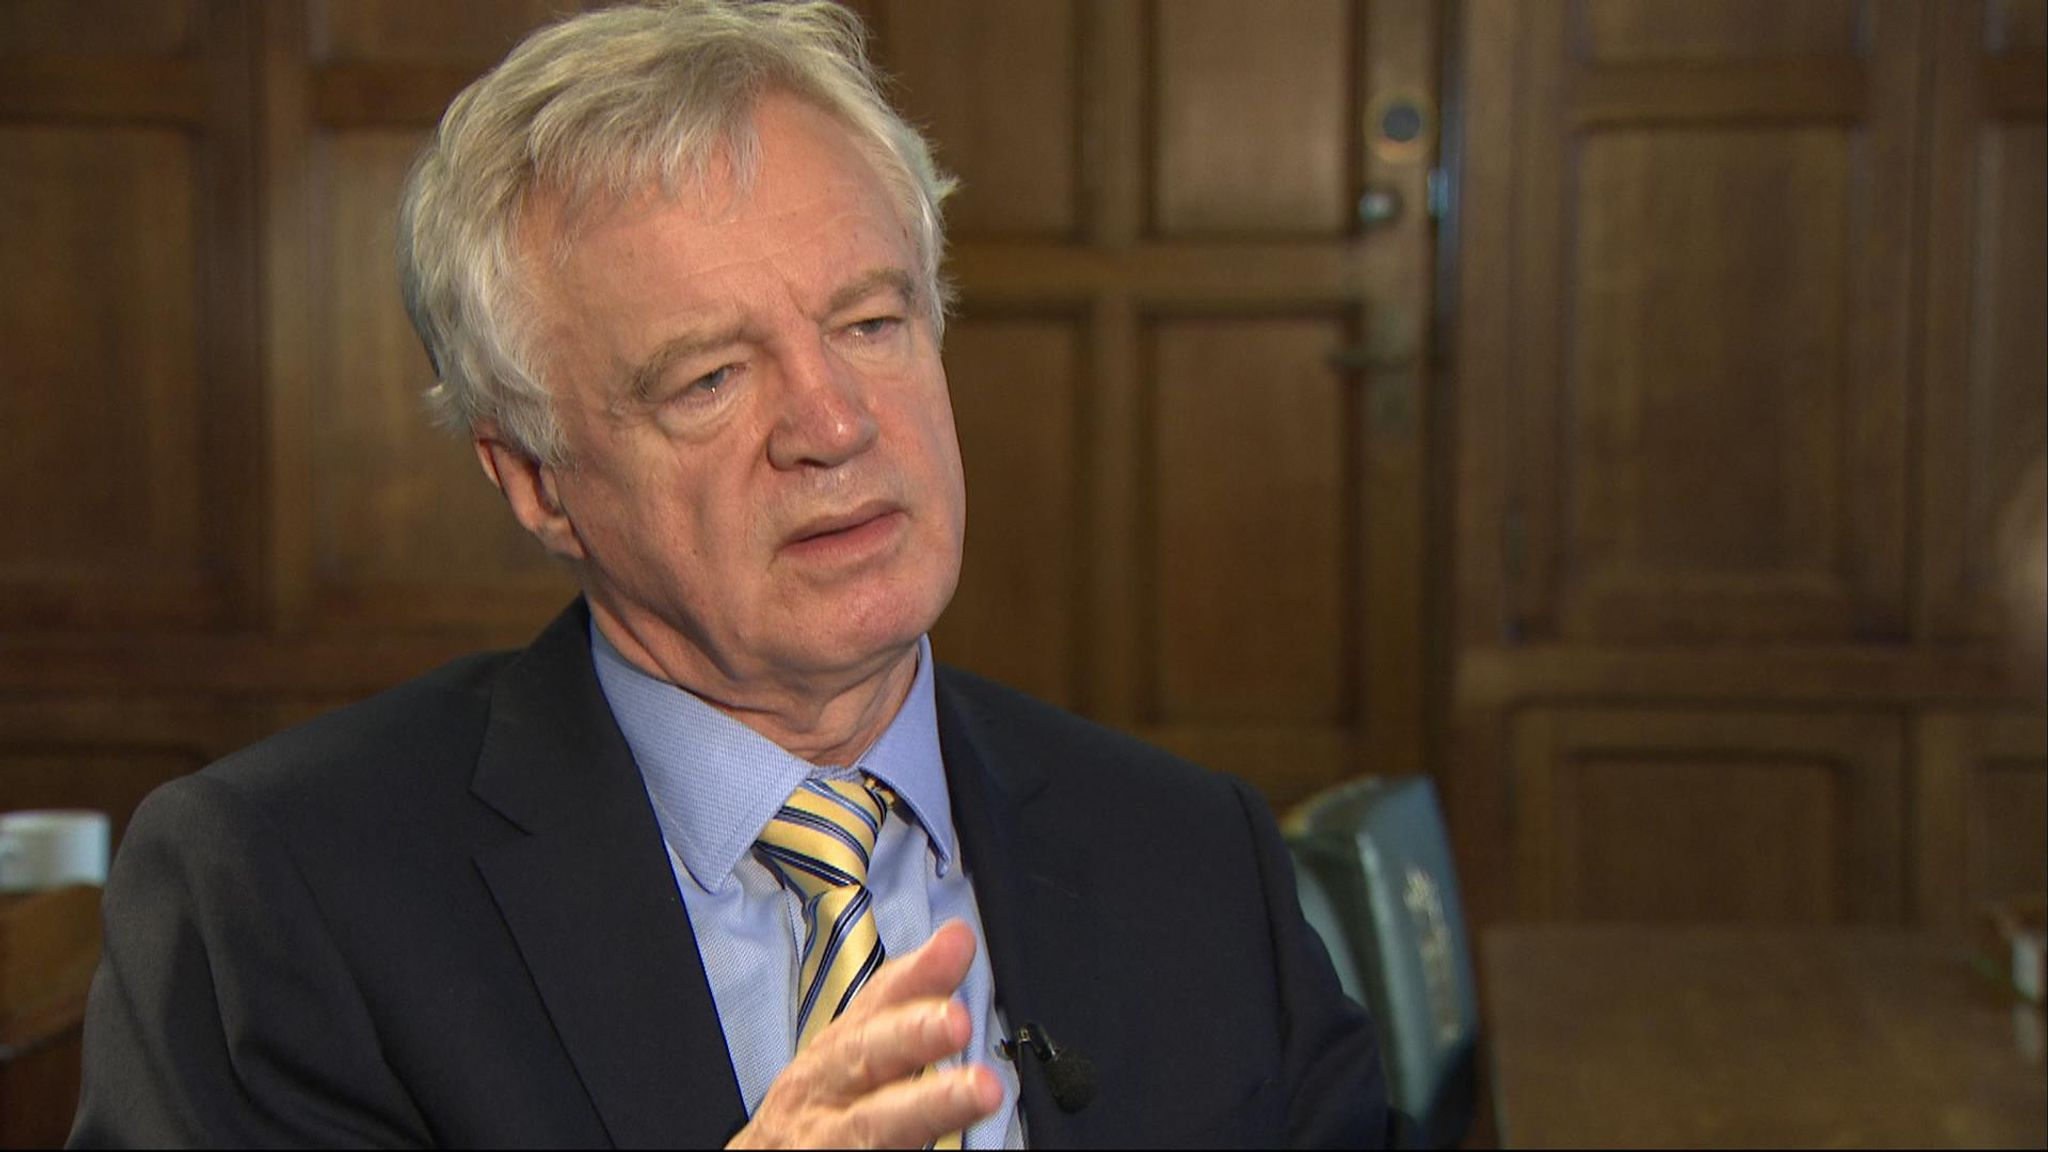 David Davis warns Tory Brexiteers: 'Remember the Spartans lost!'